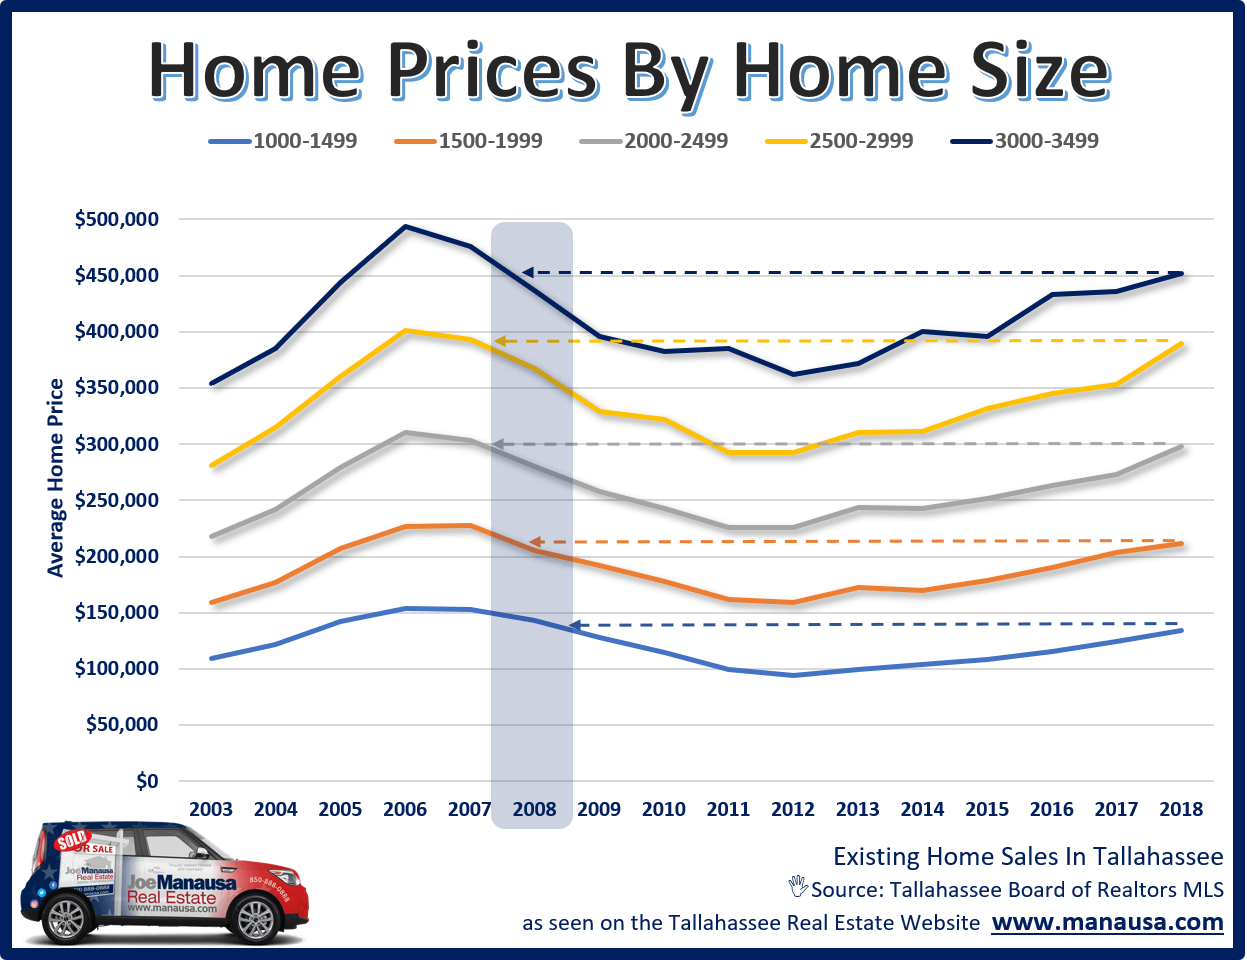 Home prices in Tallahassee, sorted by differing ranges of home sizes